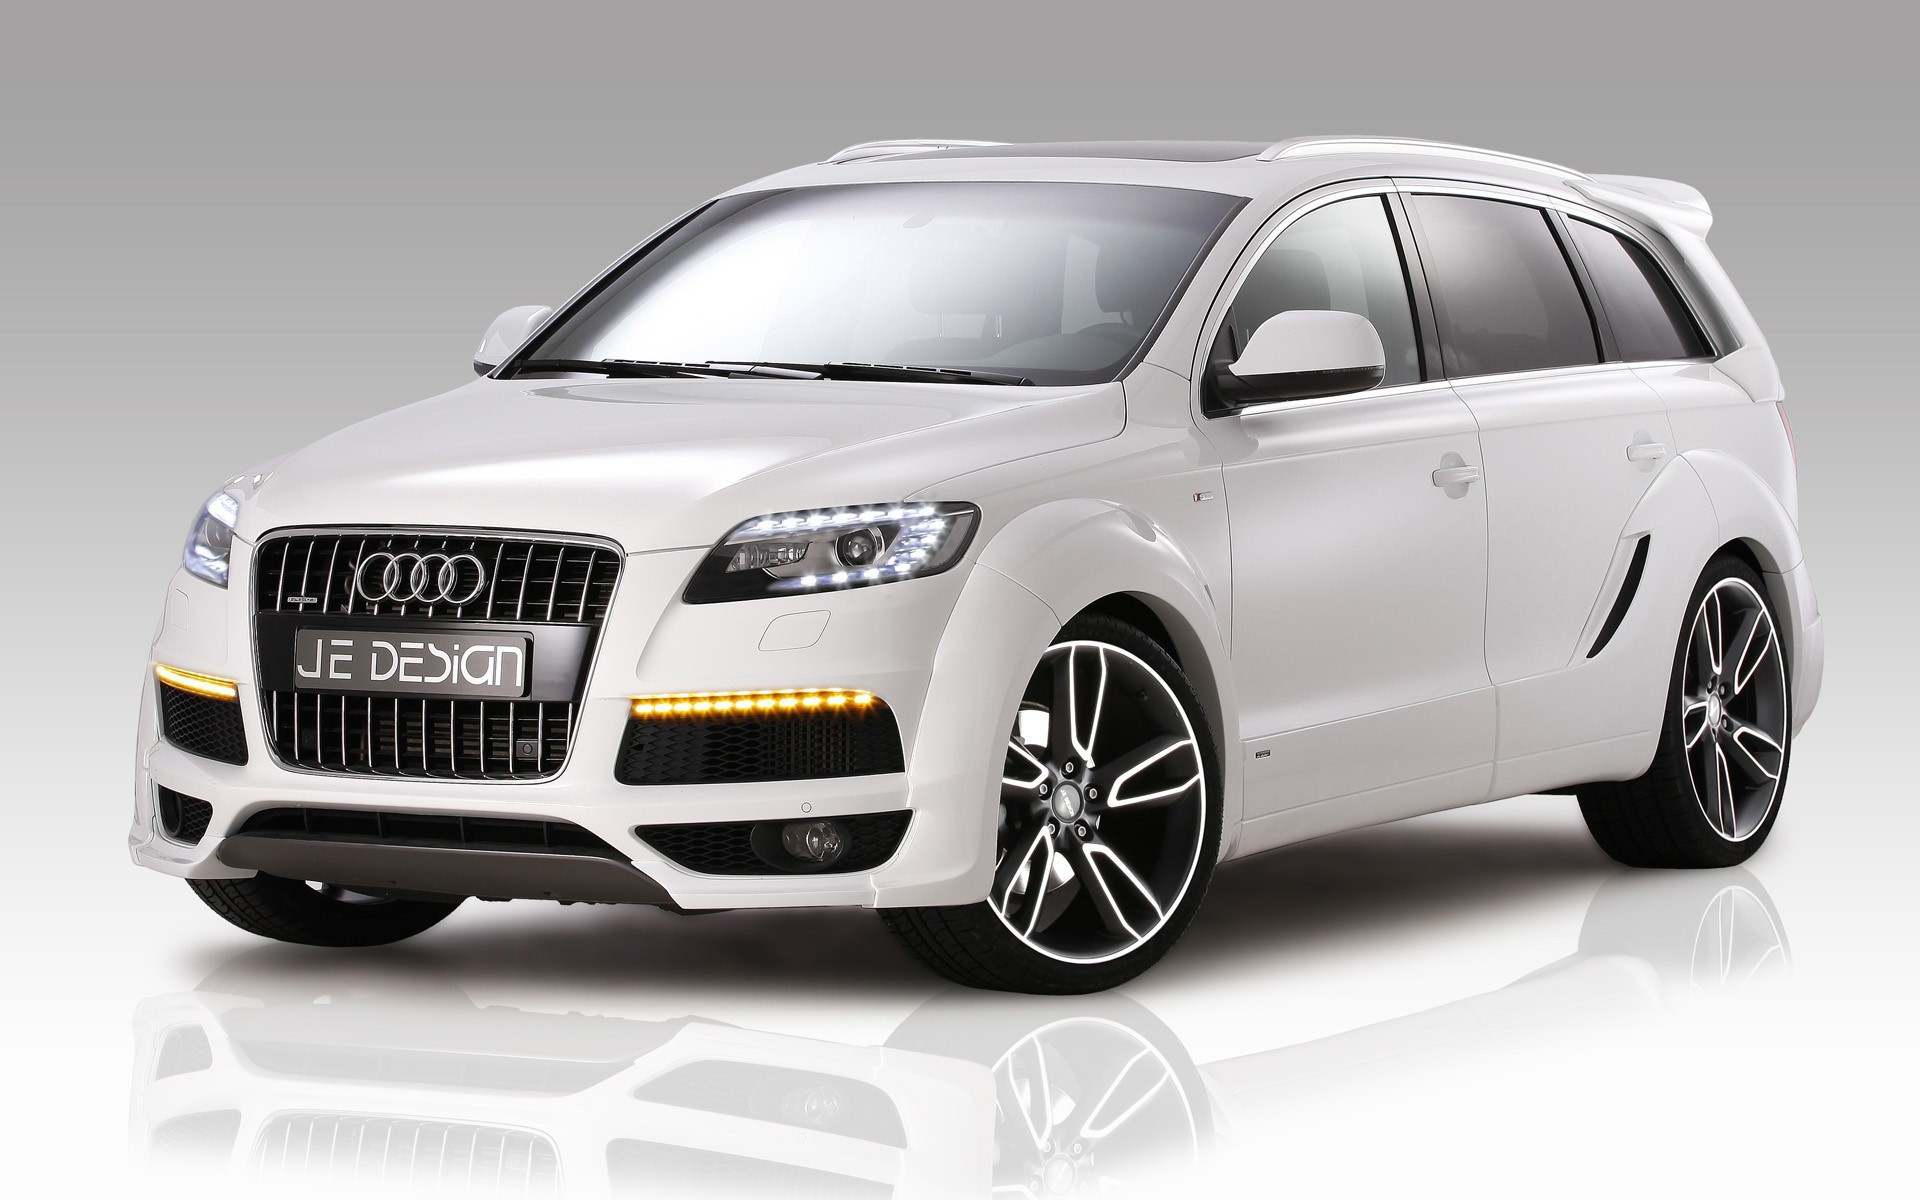 Audi Q7 German Cars Je Design Suv Lights Wallpaper Allwallpaper In